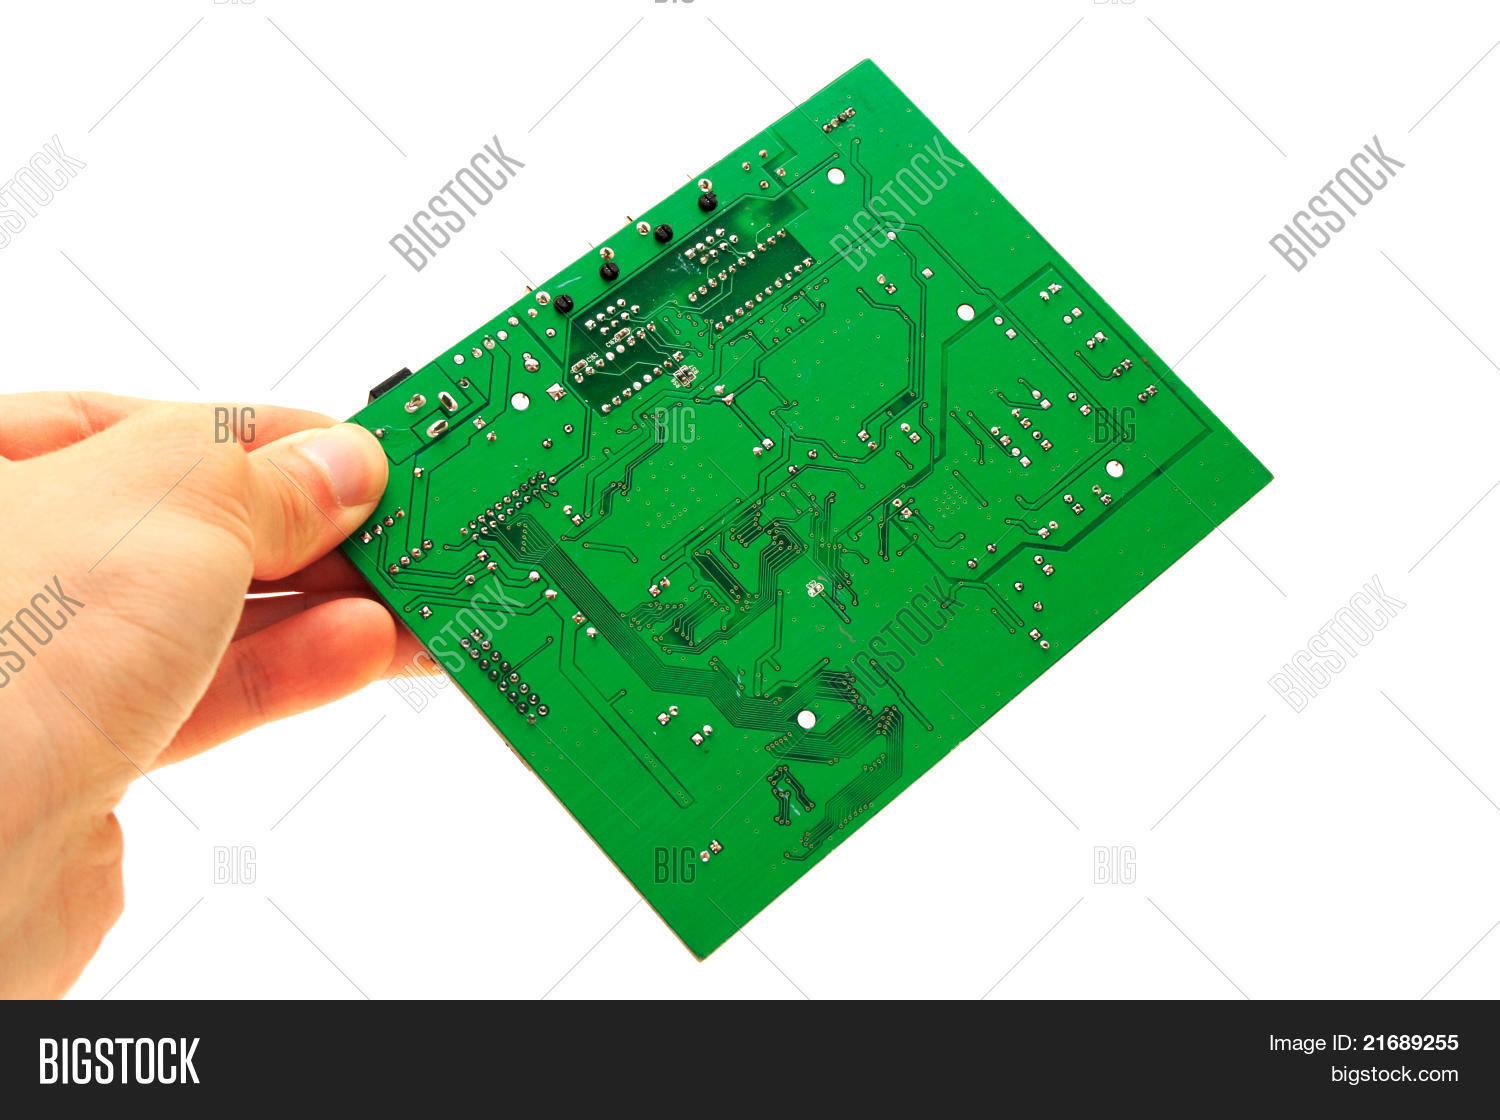 Human Hand Holding Image Photo Free Trial Bigstock Green Computer Circuit Board With Electronics Components And